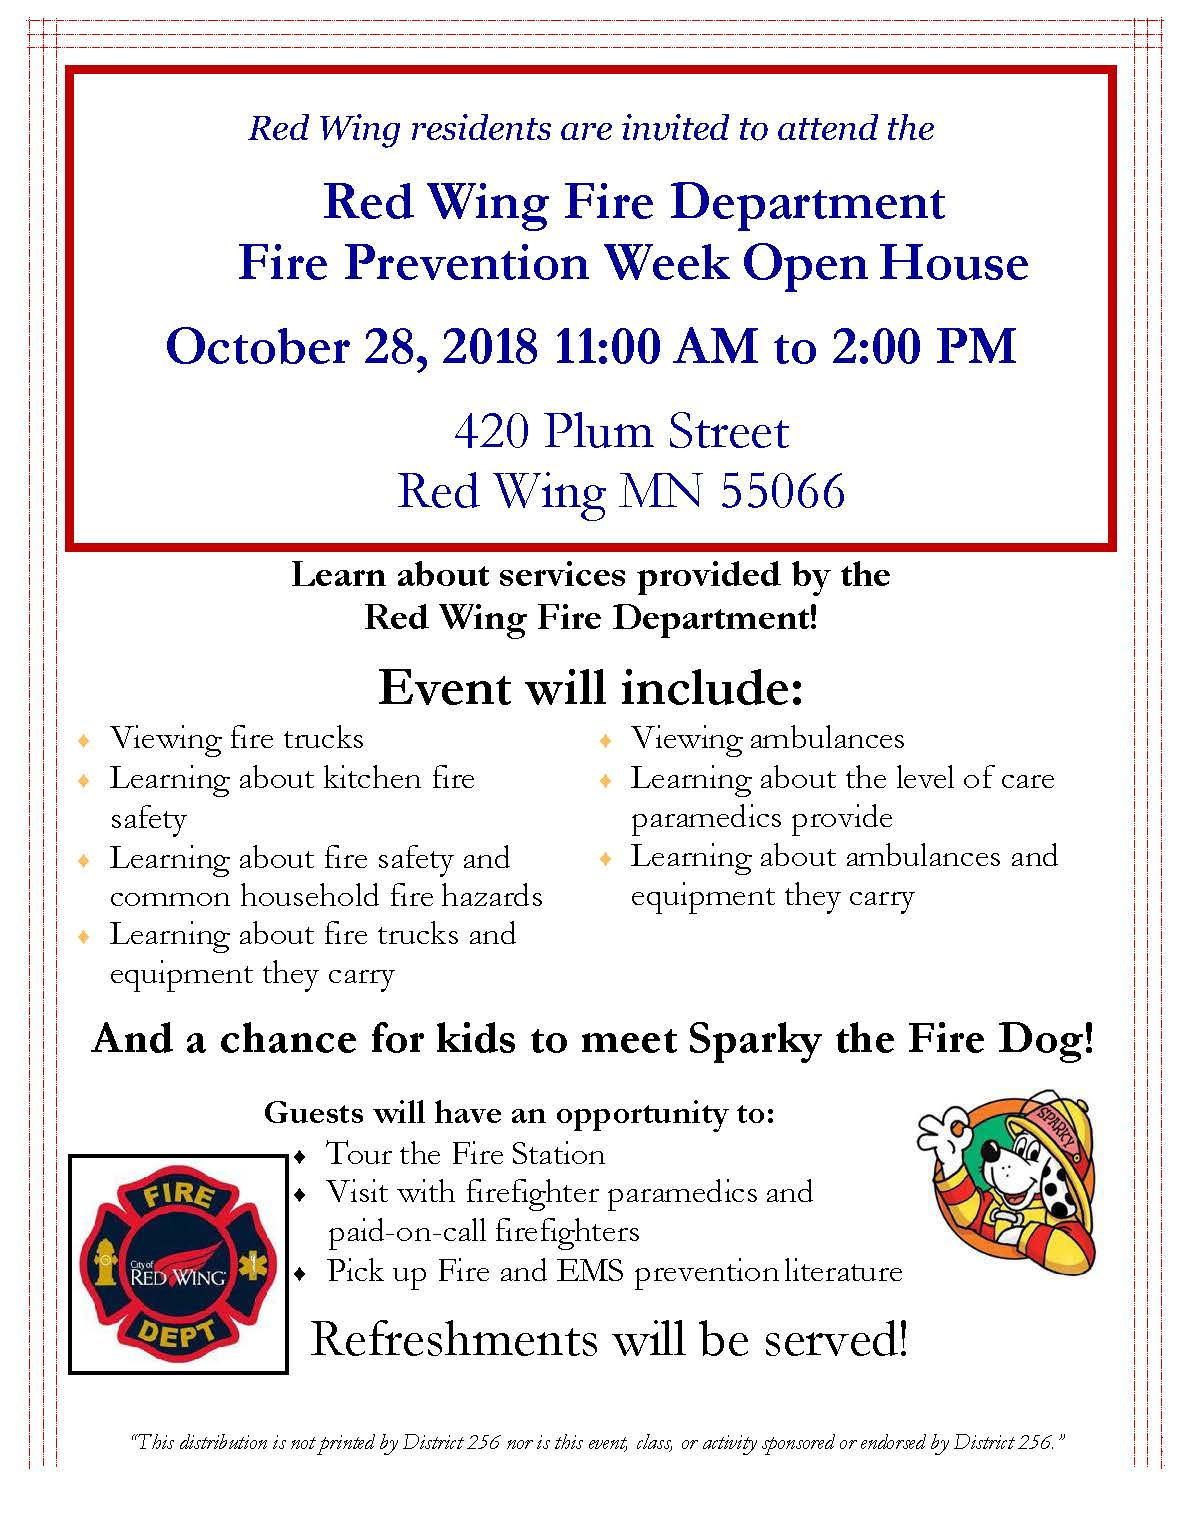 Invitation to attend the FD Open House on Oct. 28, 2018